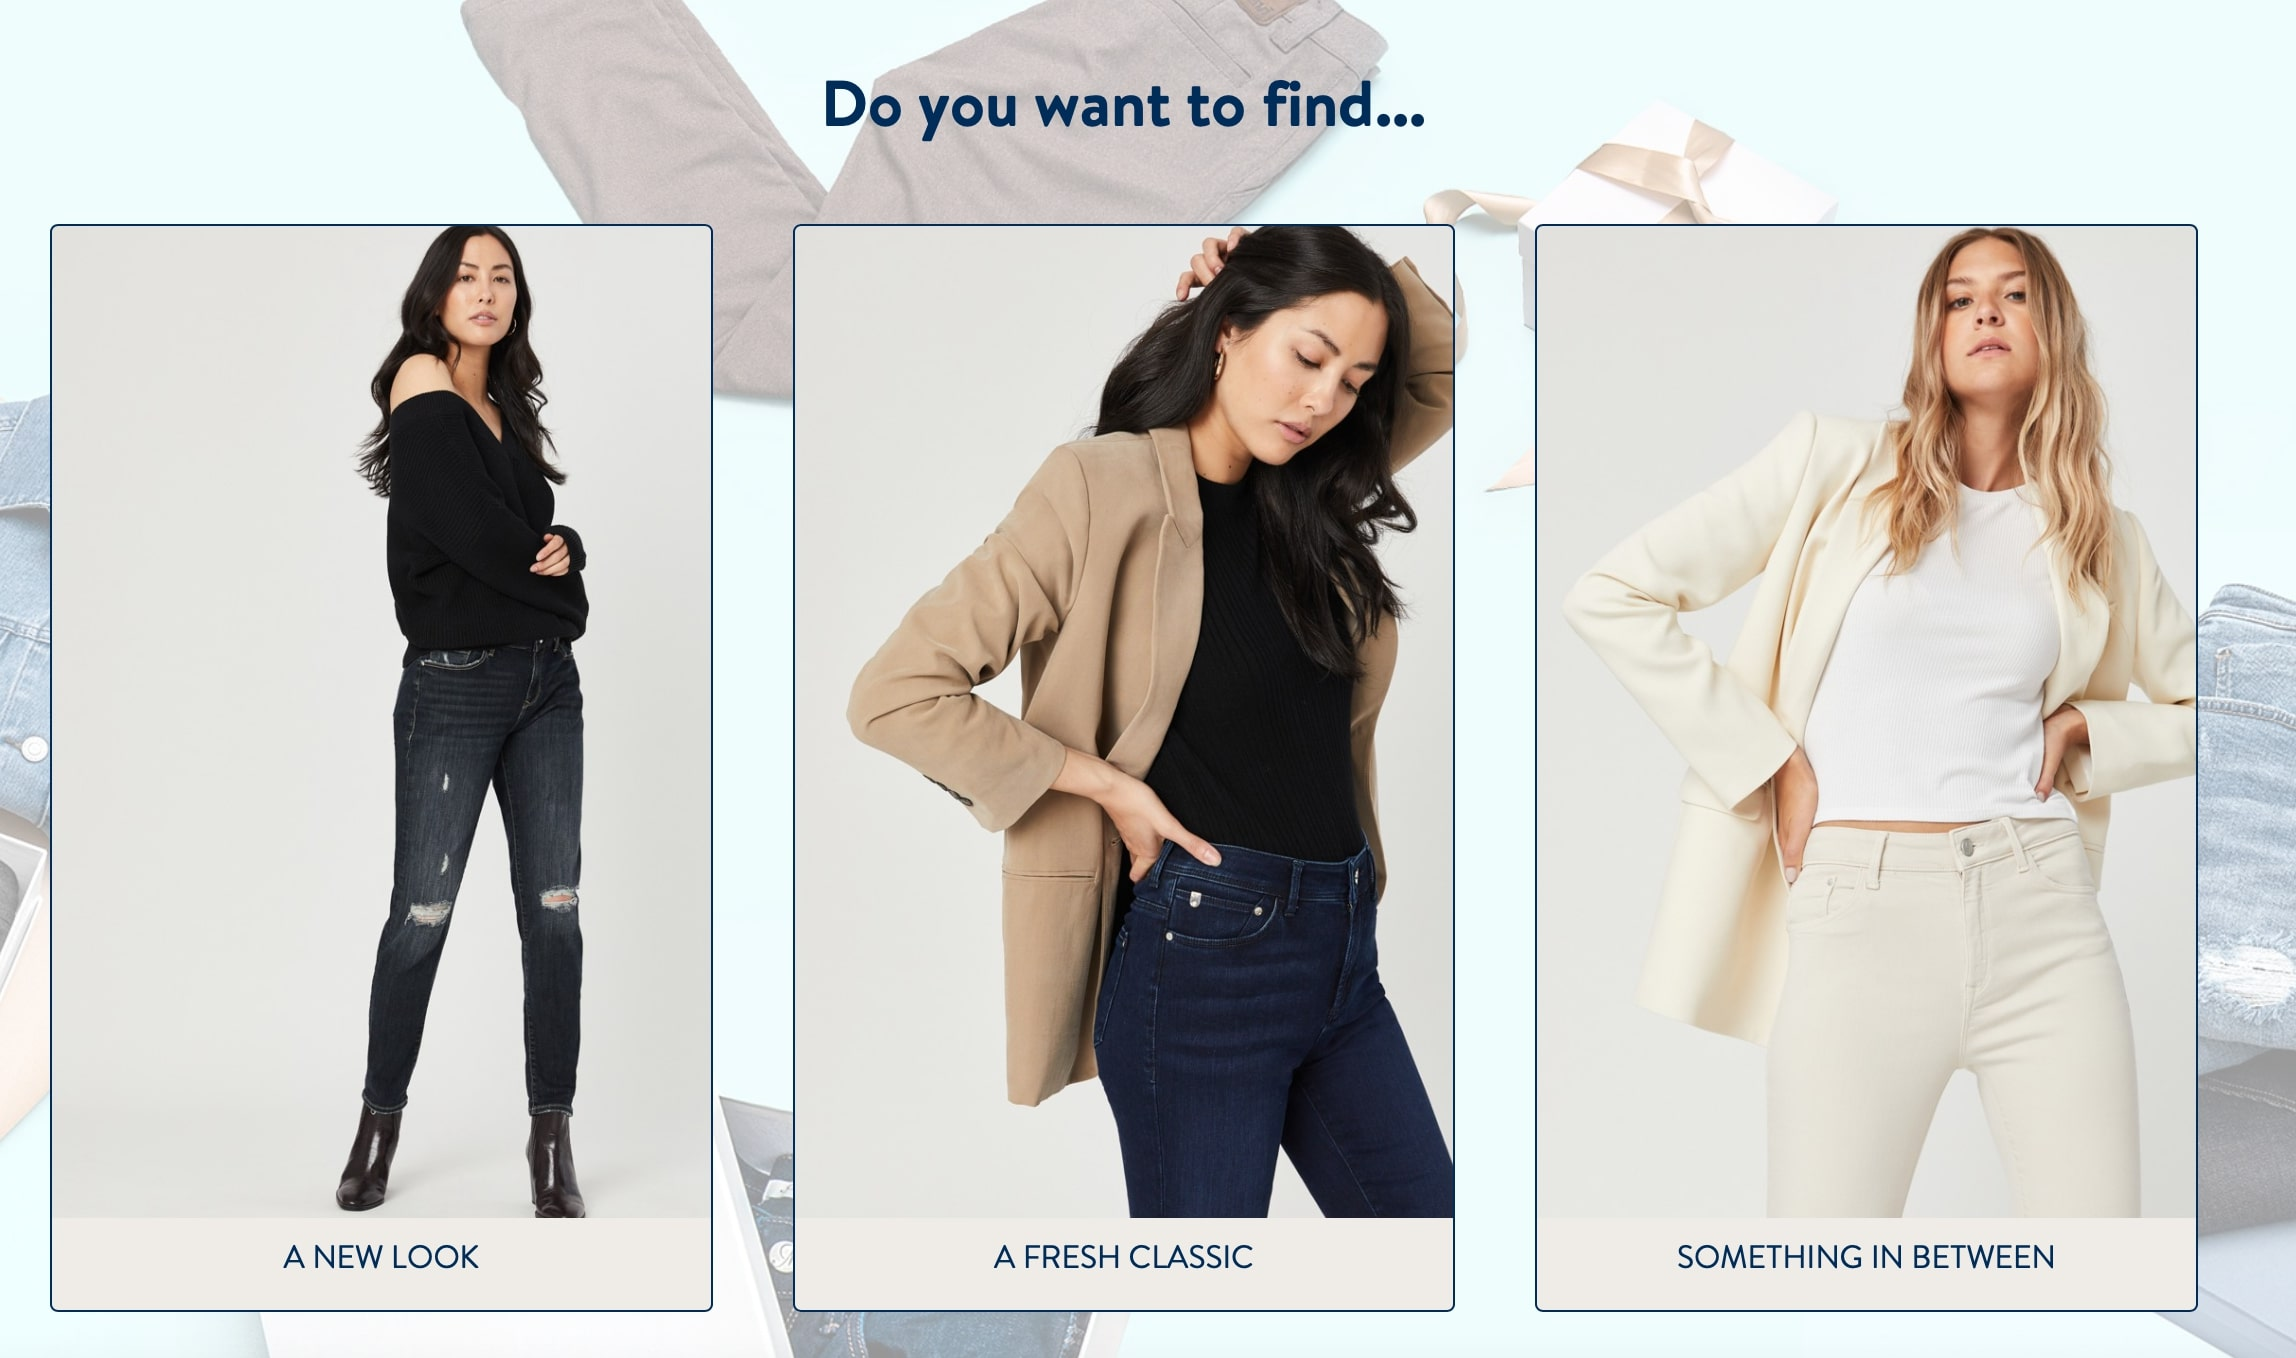 Screenshot of Mavis quiz asking what kind of look you want to find. It offers three different options